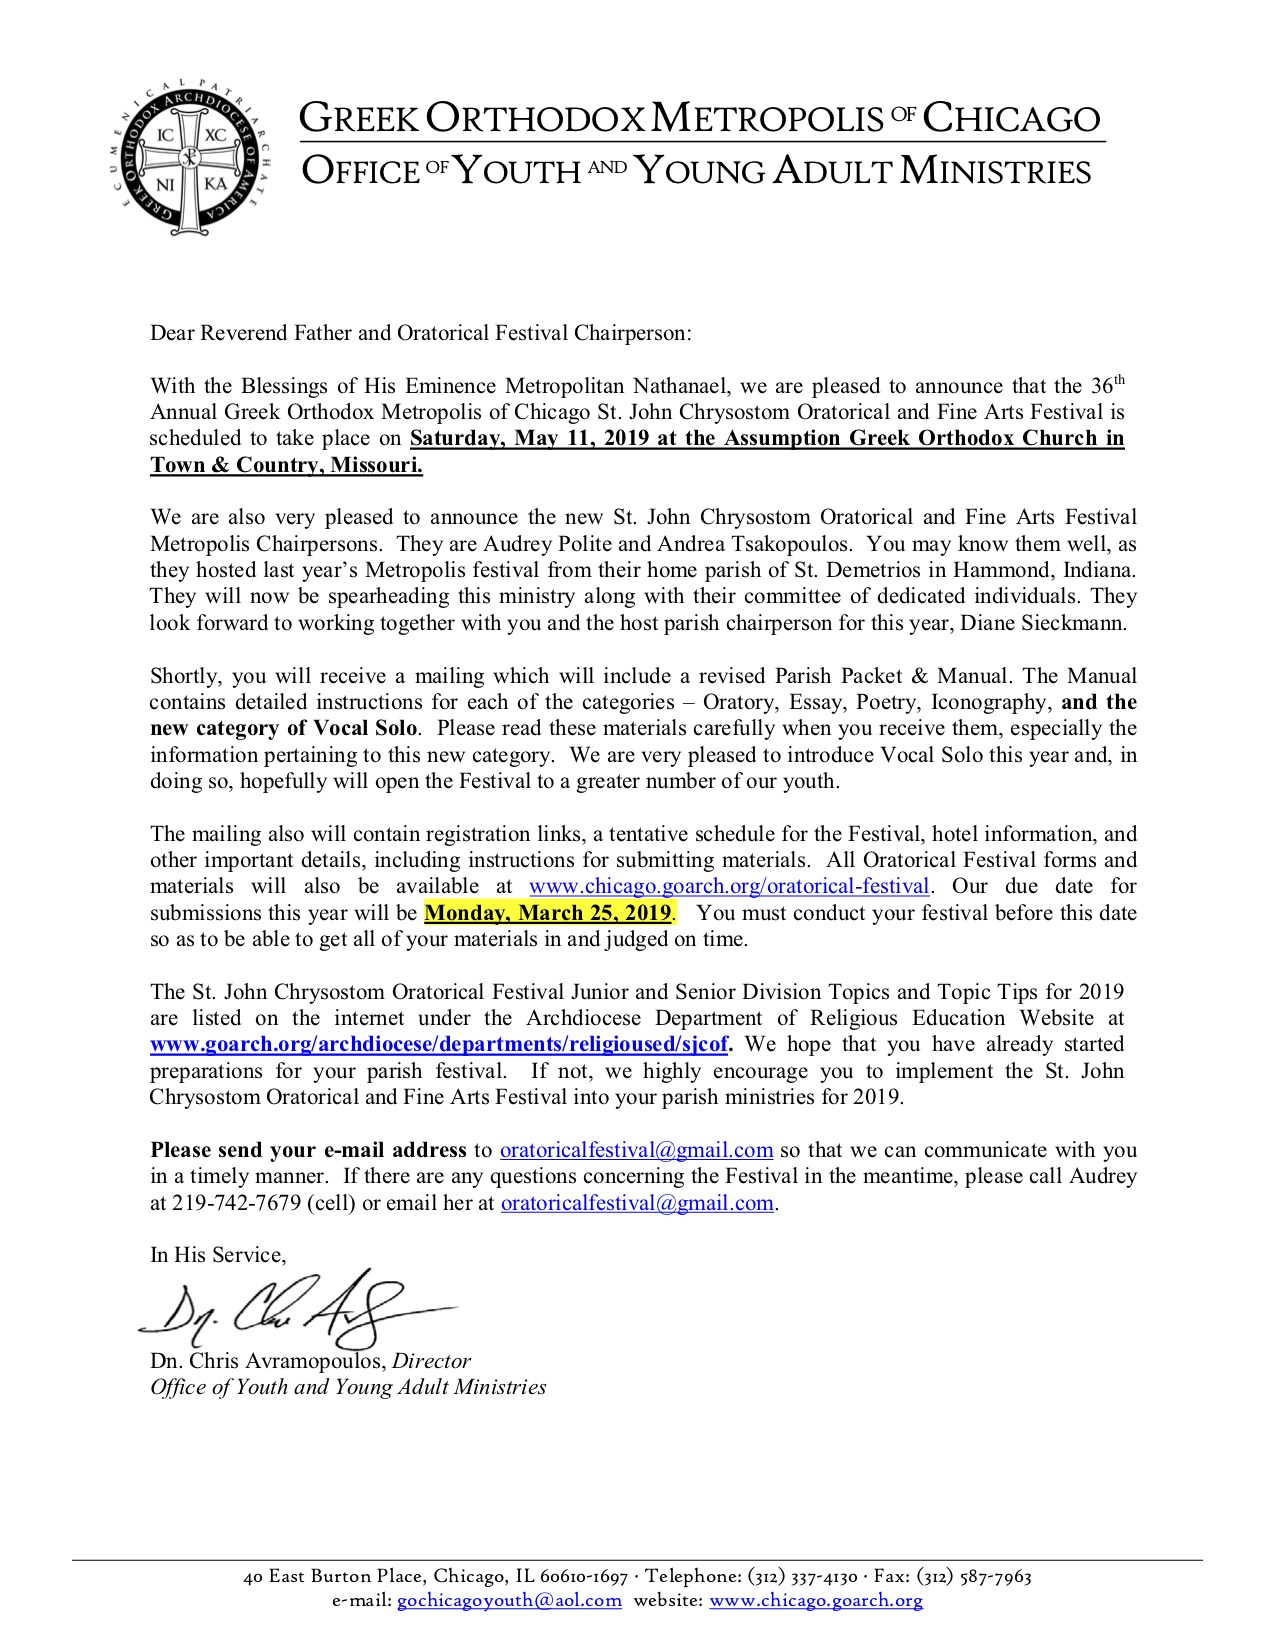 2019 Oratorical Festival Announcement